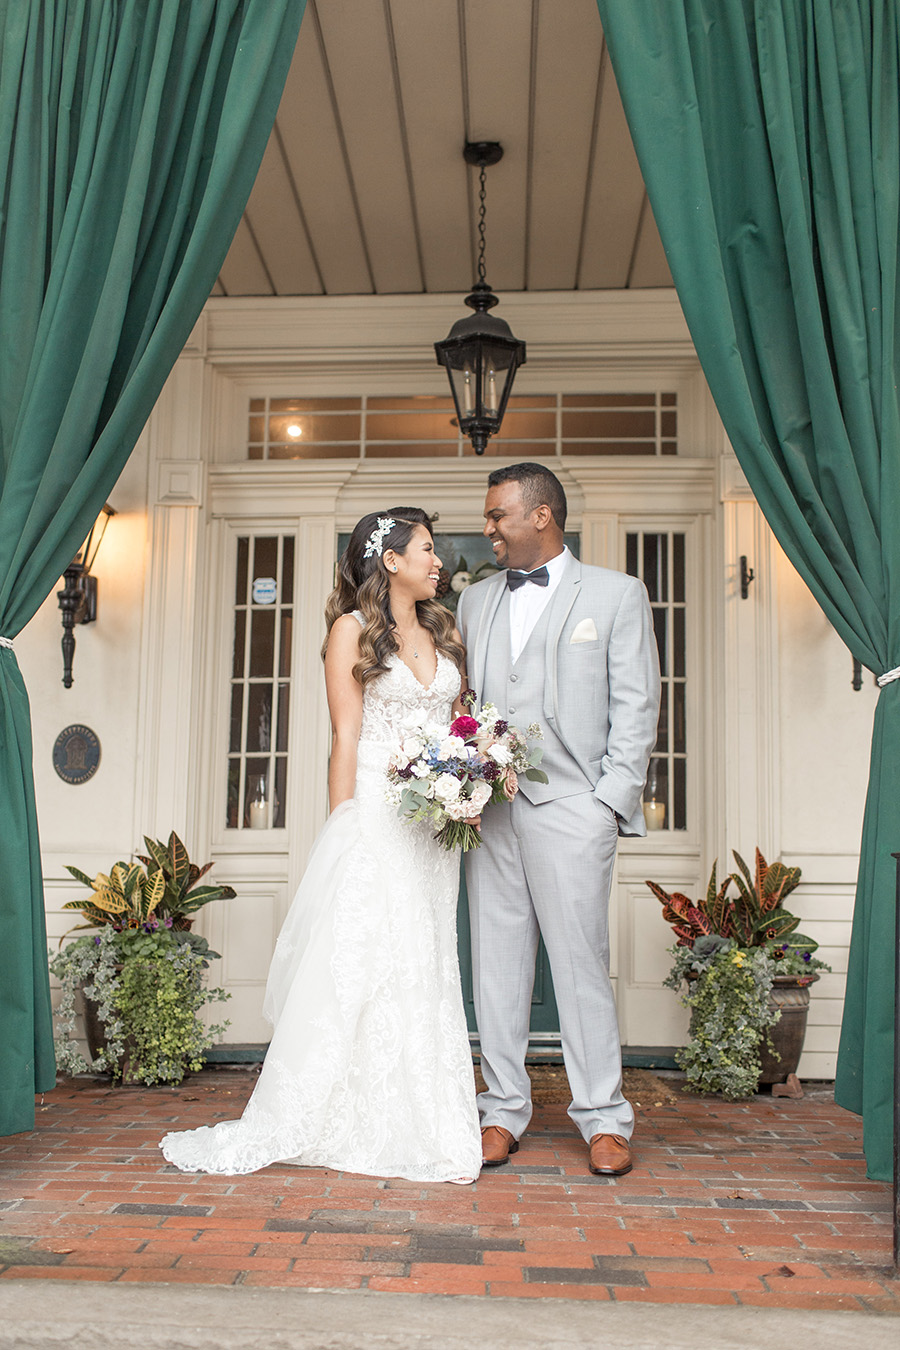 Wedding day portraits on the porch at David's Country Inn